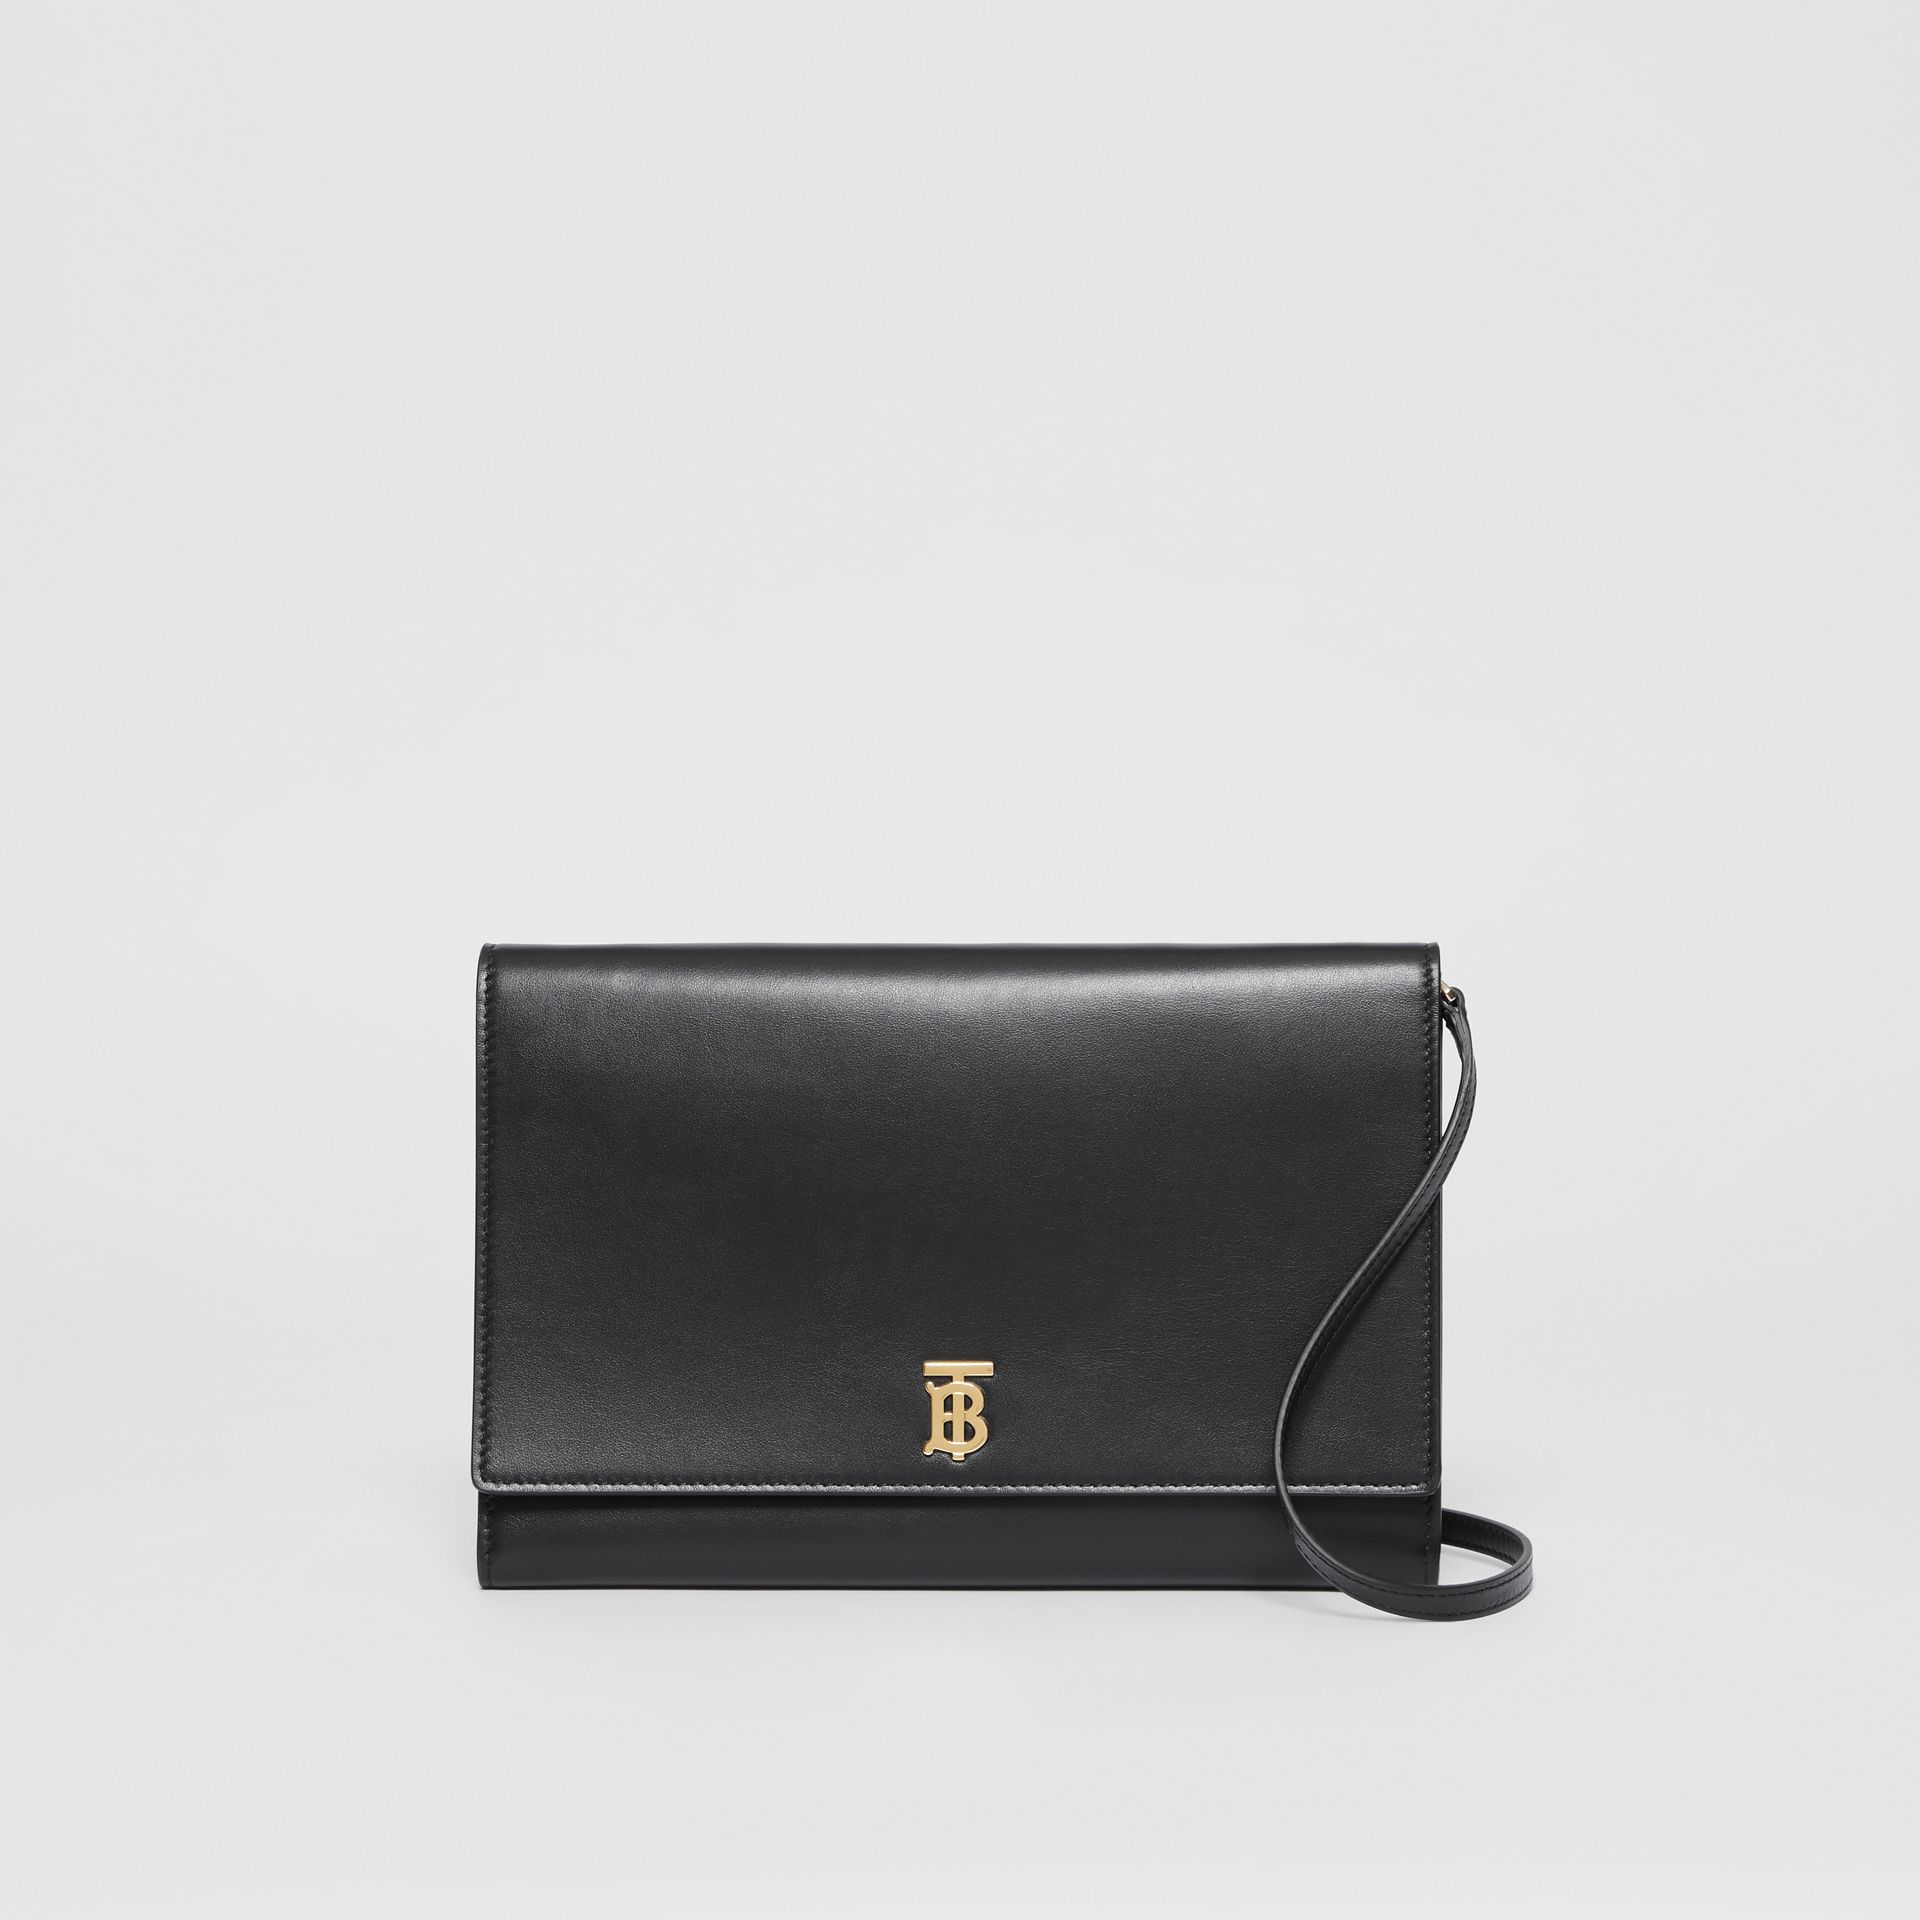 Monogram Motif Leather Bag with Detachable Strap in Black - Women | Burberry Hong Kong - gallery image 0